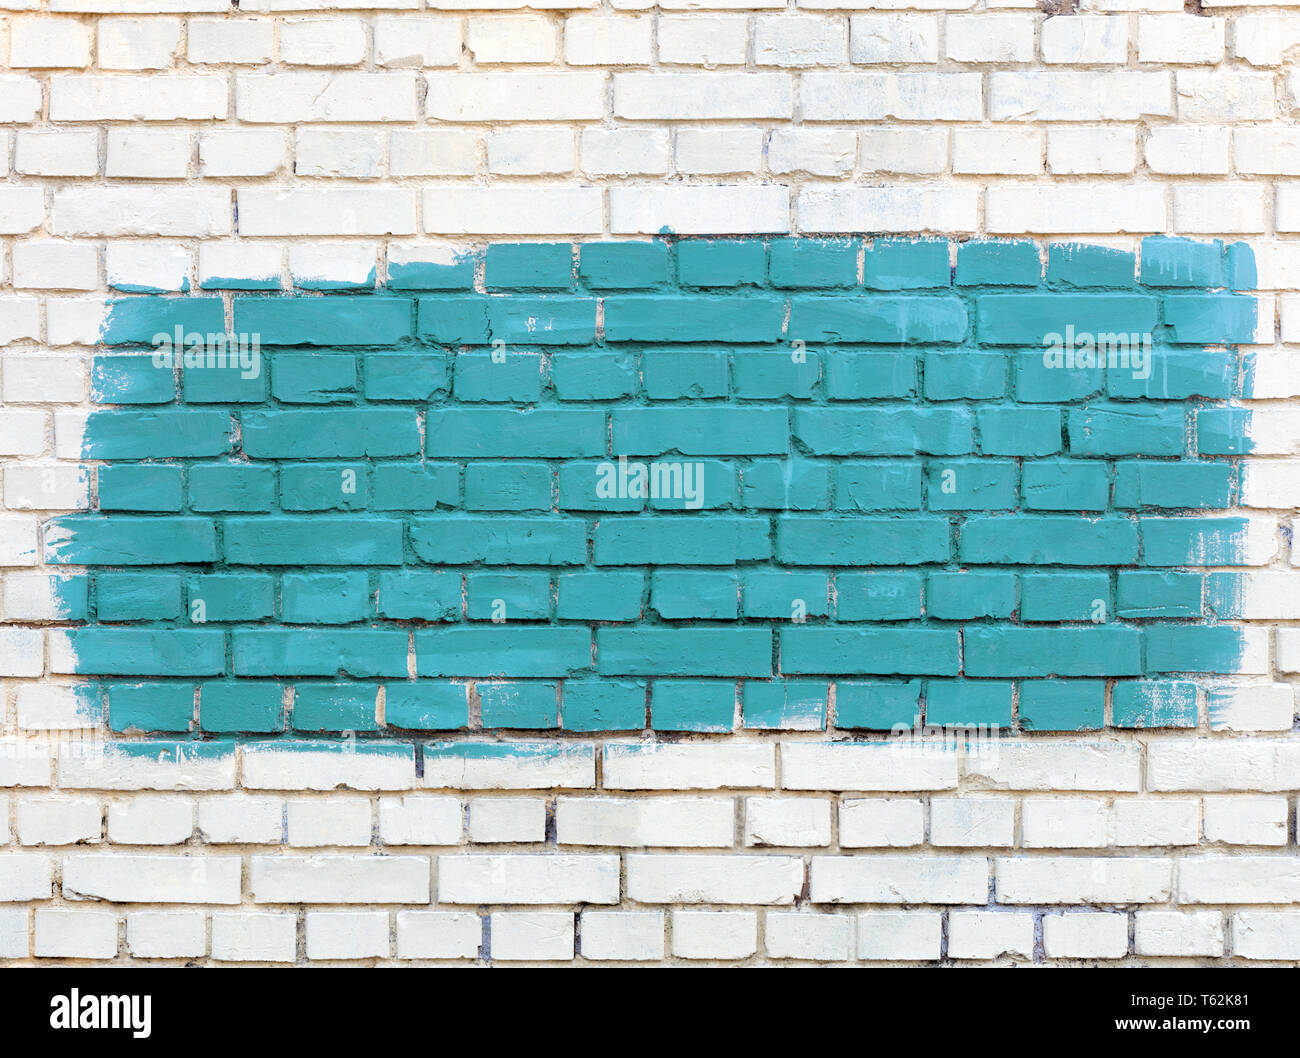 The old walls are painted with white paint and the selected fragment is painted with green paint. - Stock Image